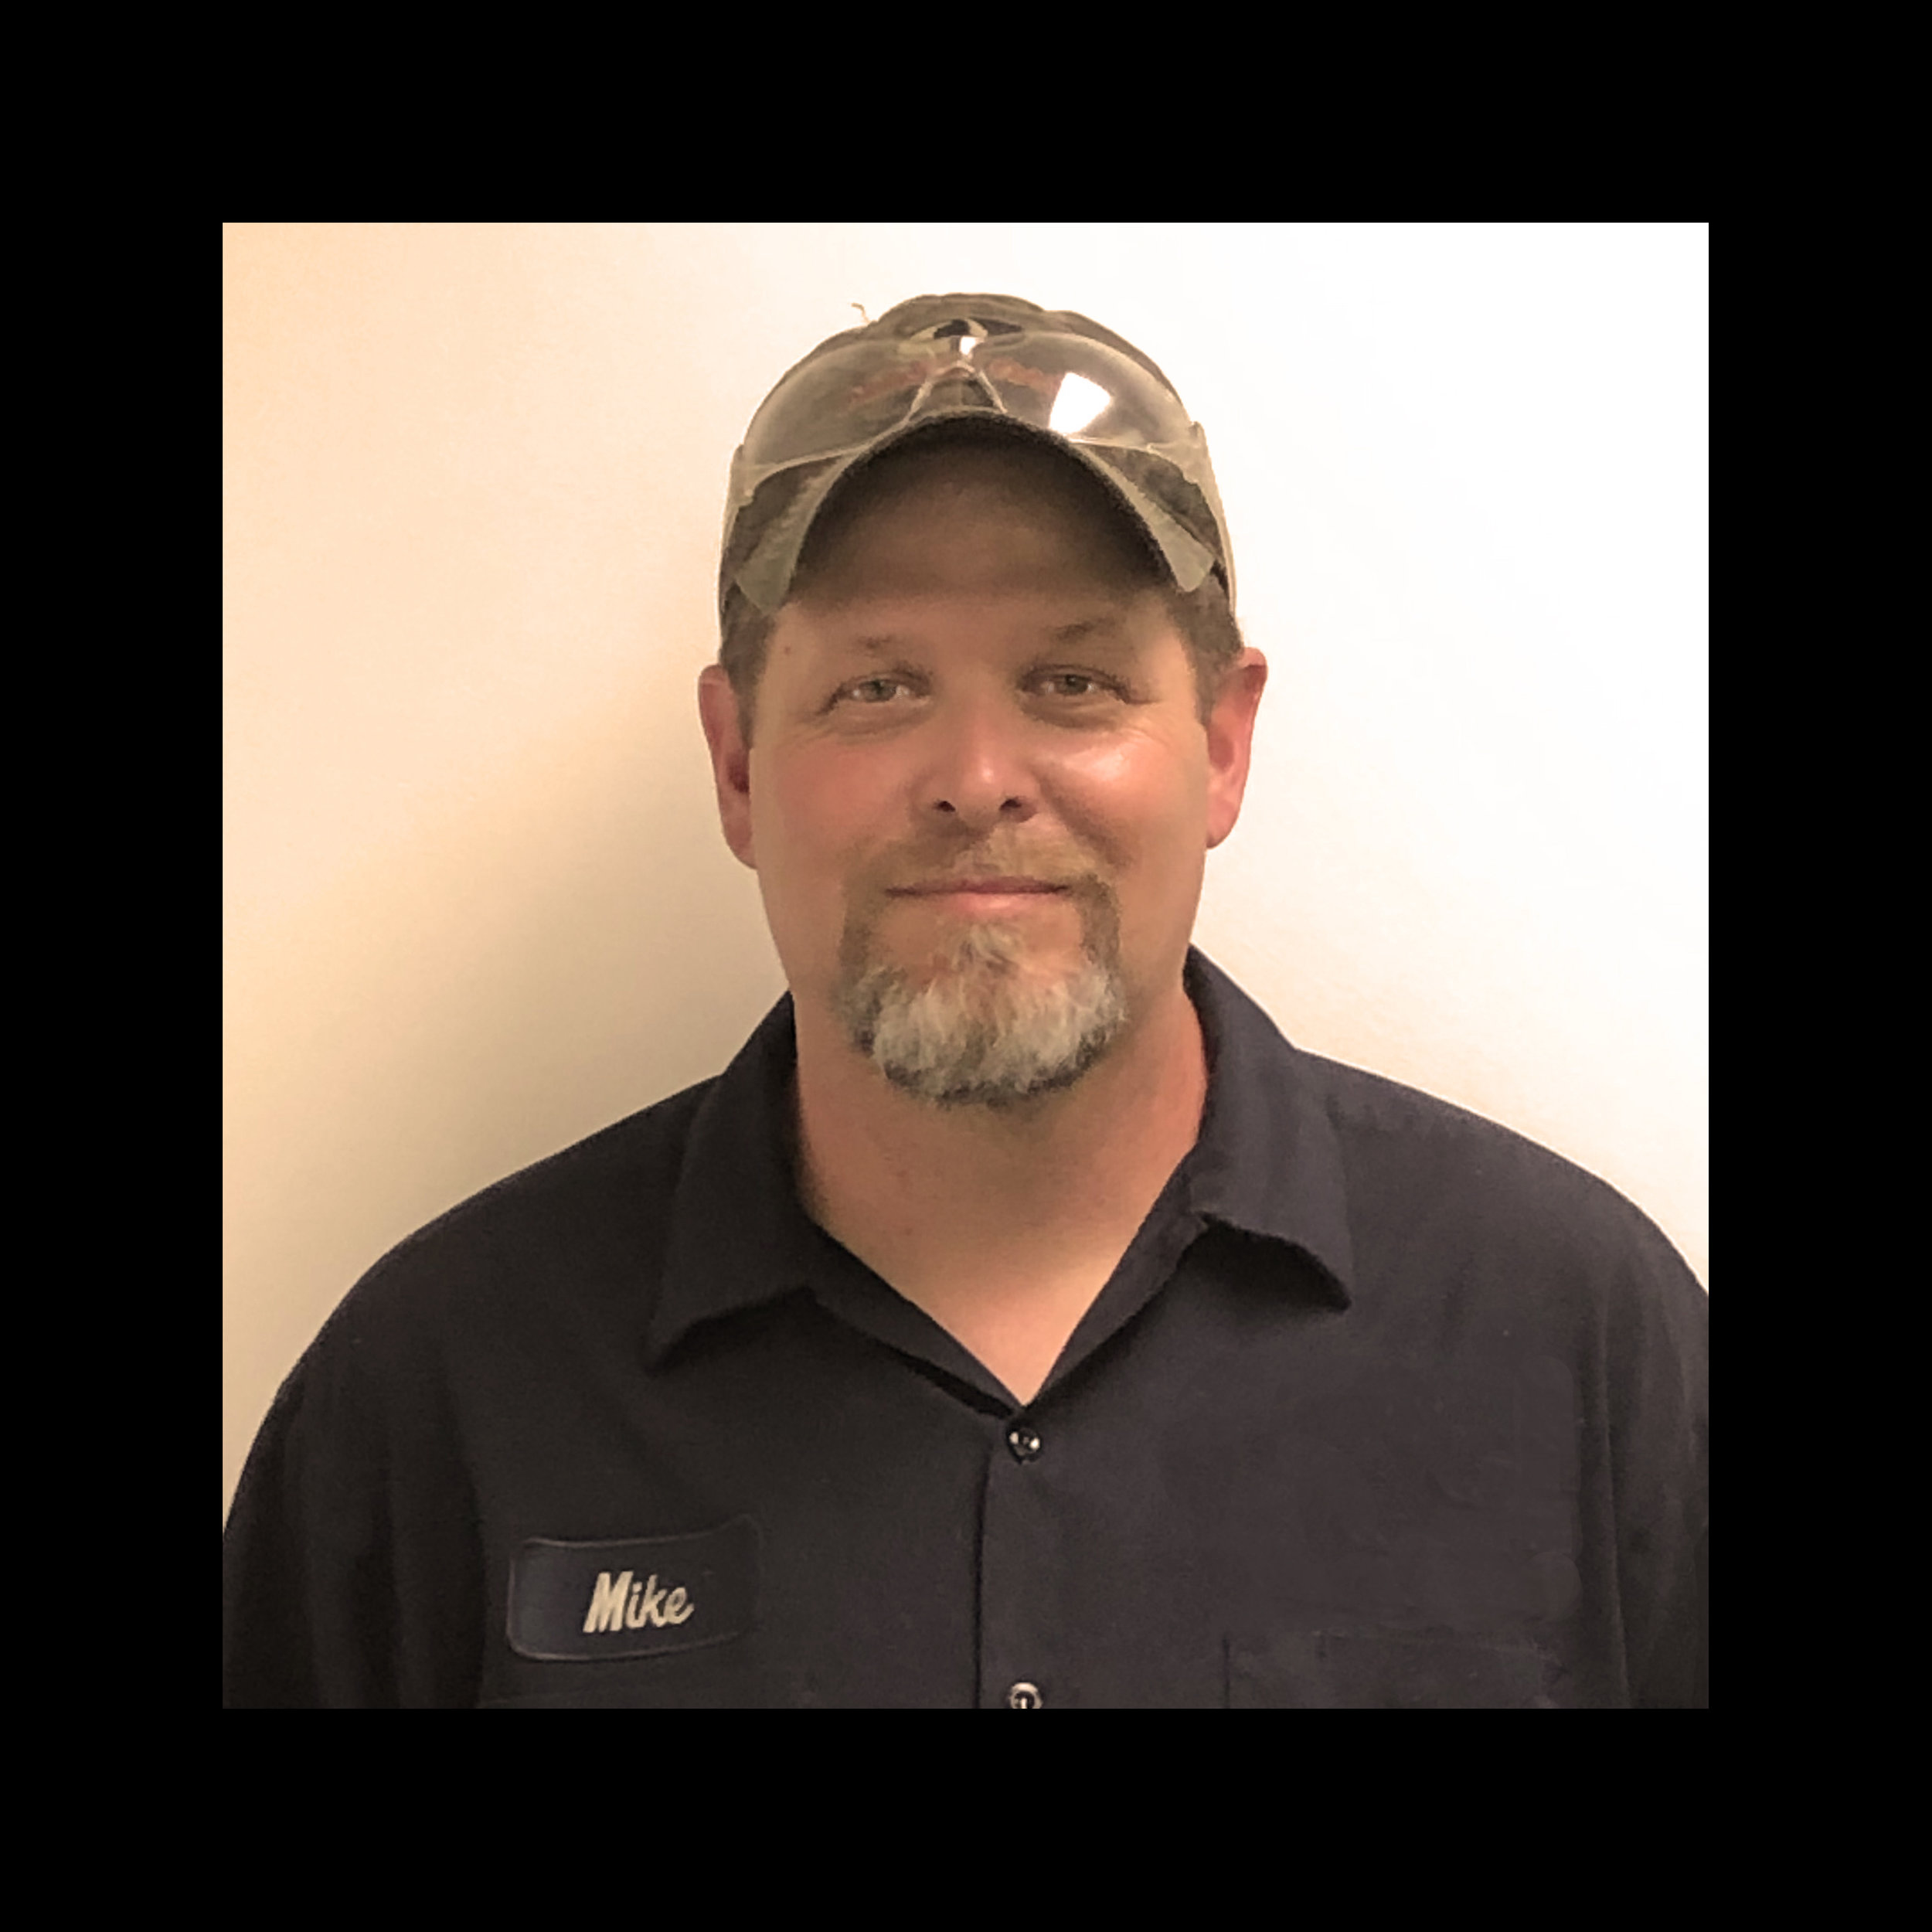 Mike - OSR is a great place to work. I've been here for 10 years. I'm a group leader, and I work with great people.